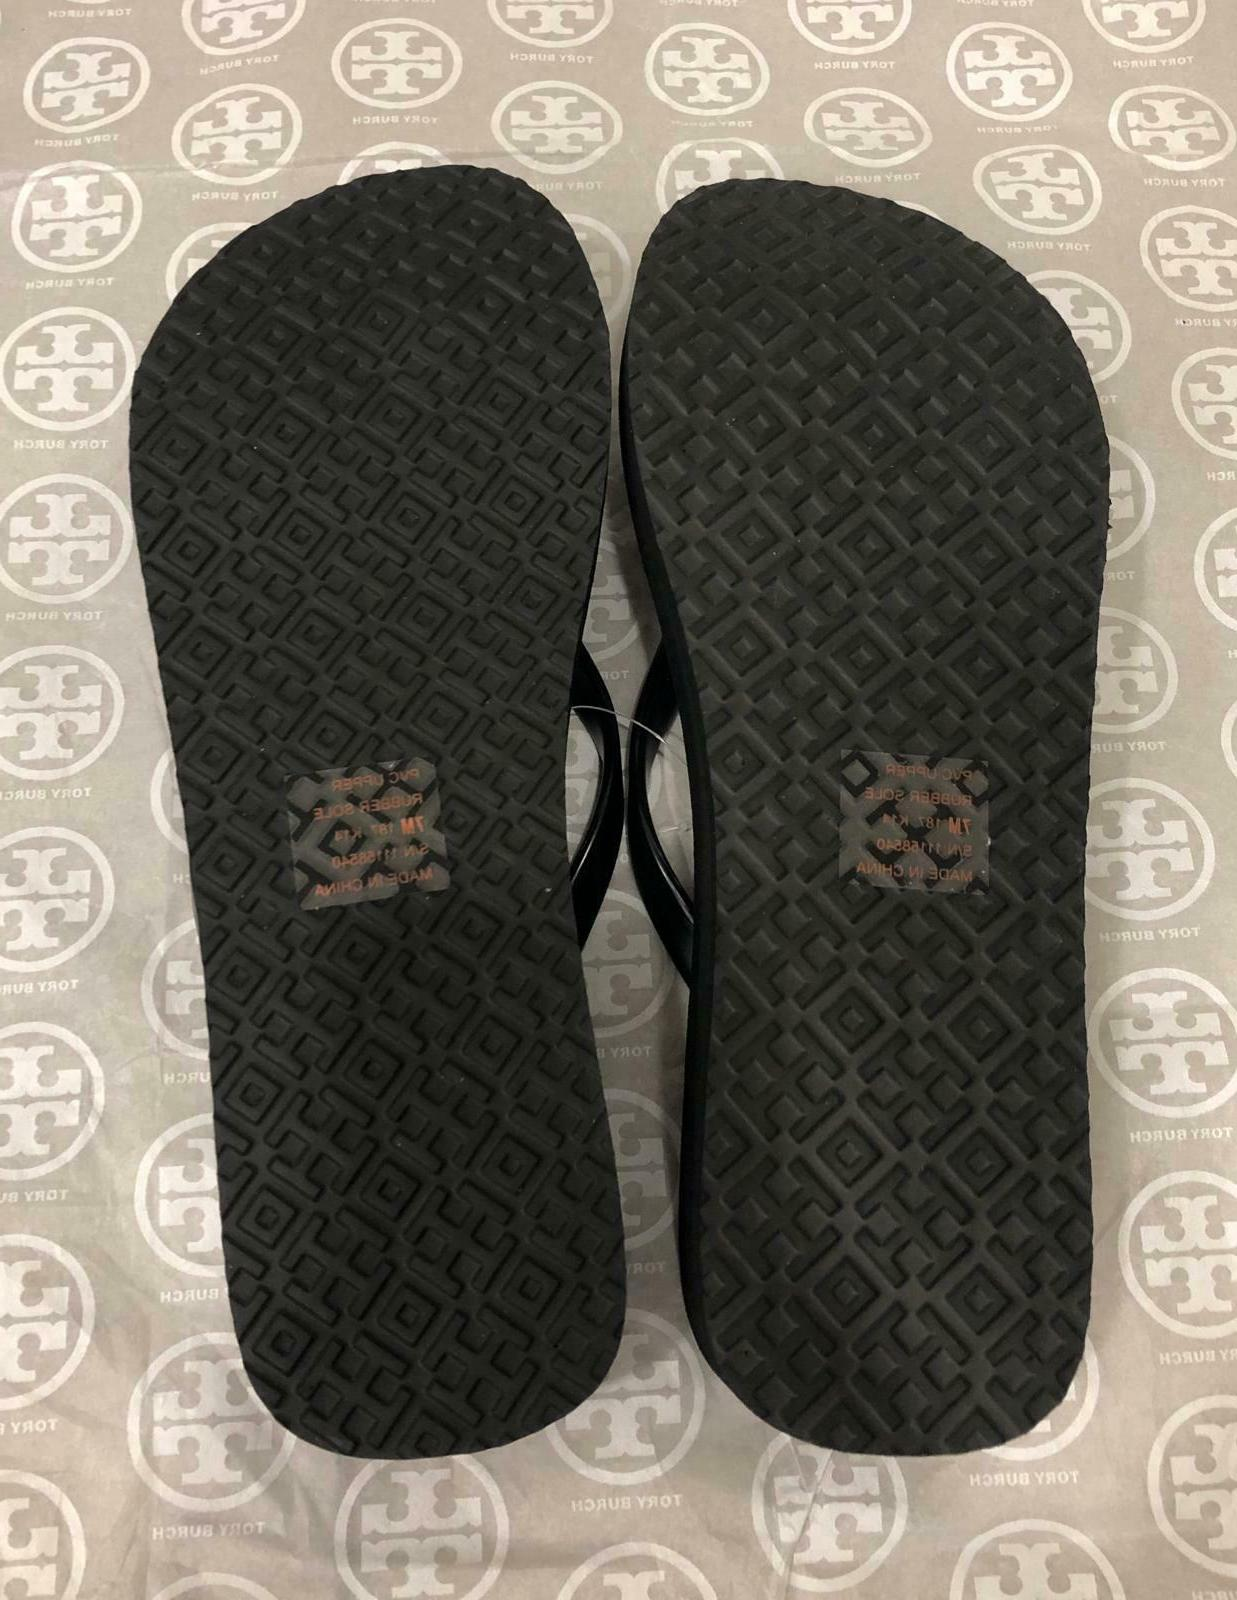 Tory Burch Wedge Size 6 USPS Priority mail